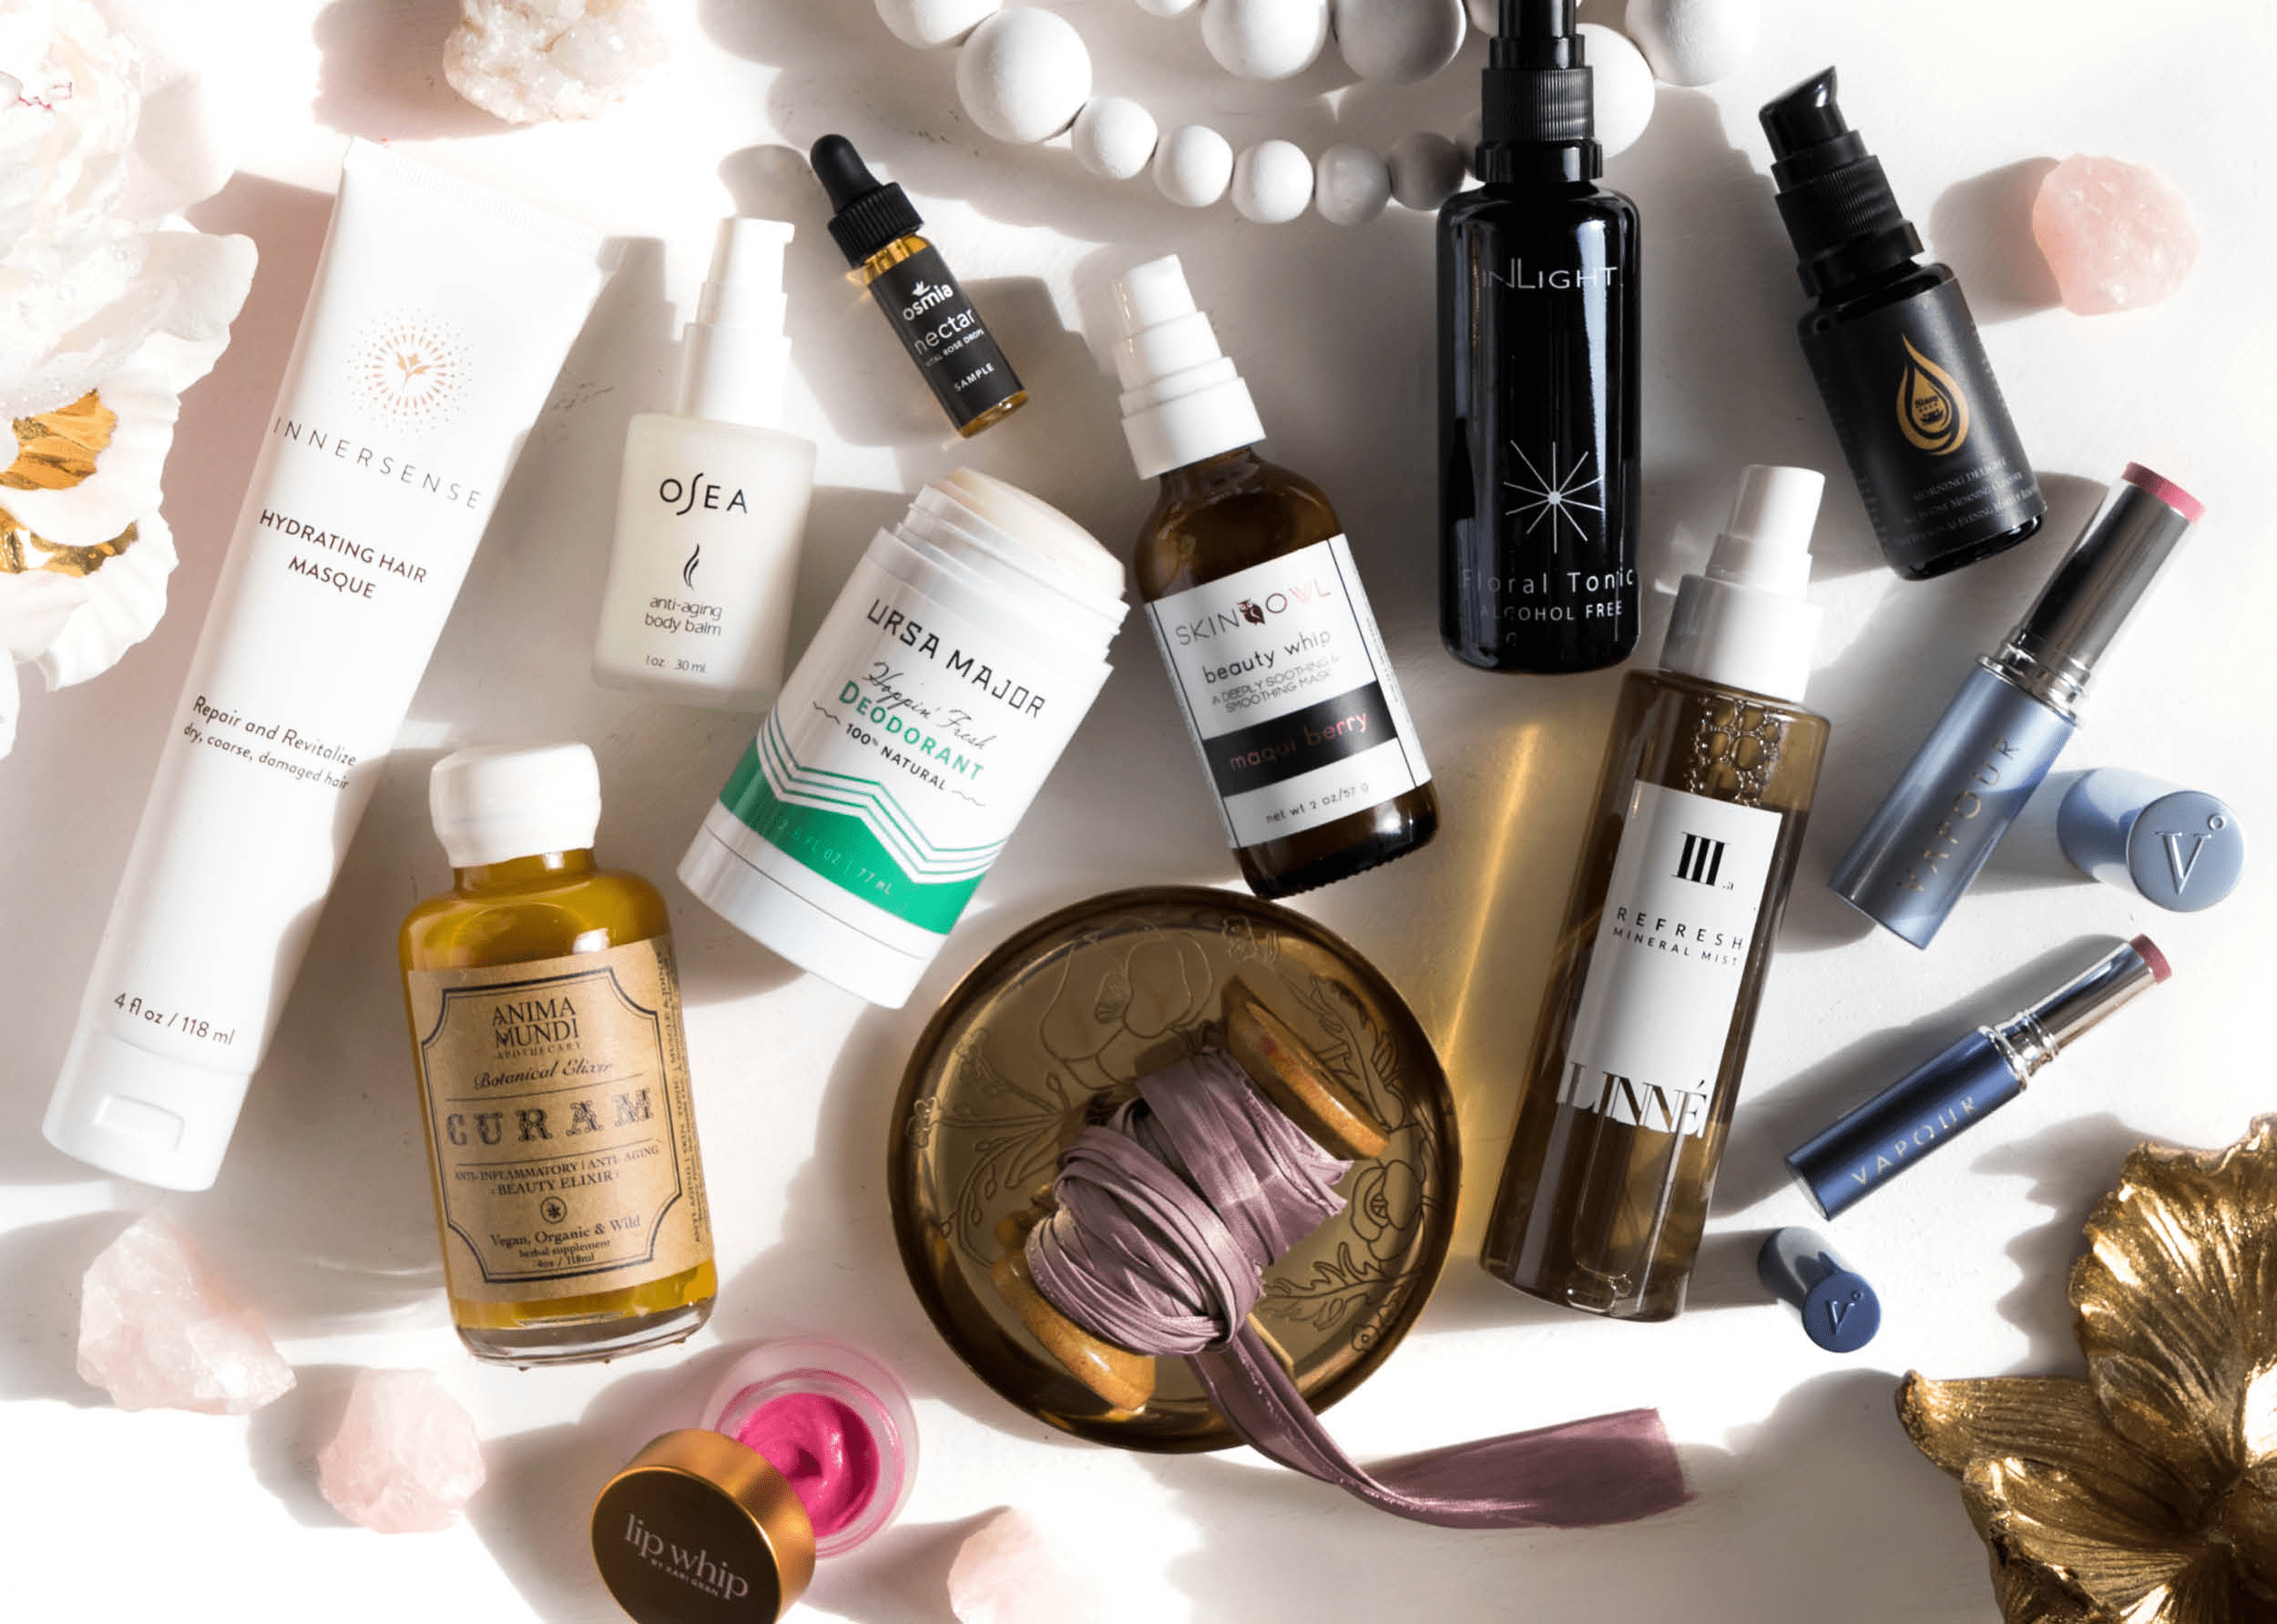 Beauty Heroes MEMBERS ONLY Black Friday 2018 Deal: Save 15% OFF + up to 3 Free Gifts with Purchase!